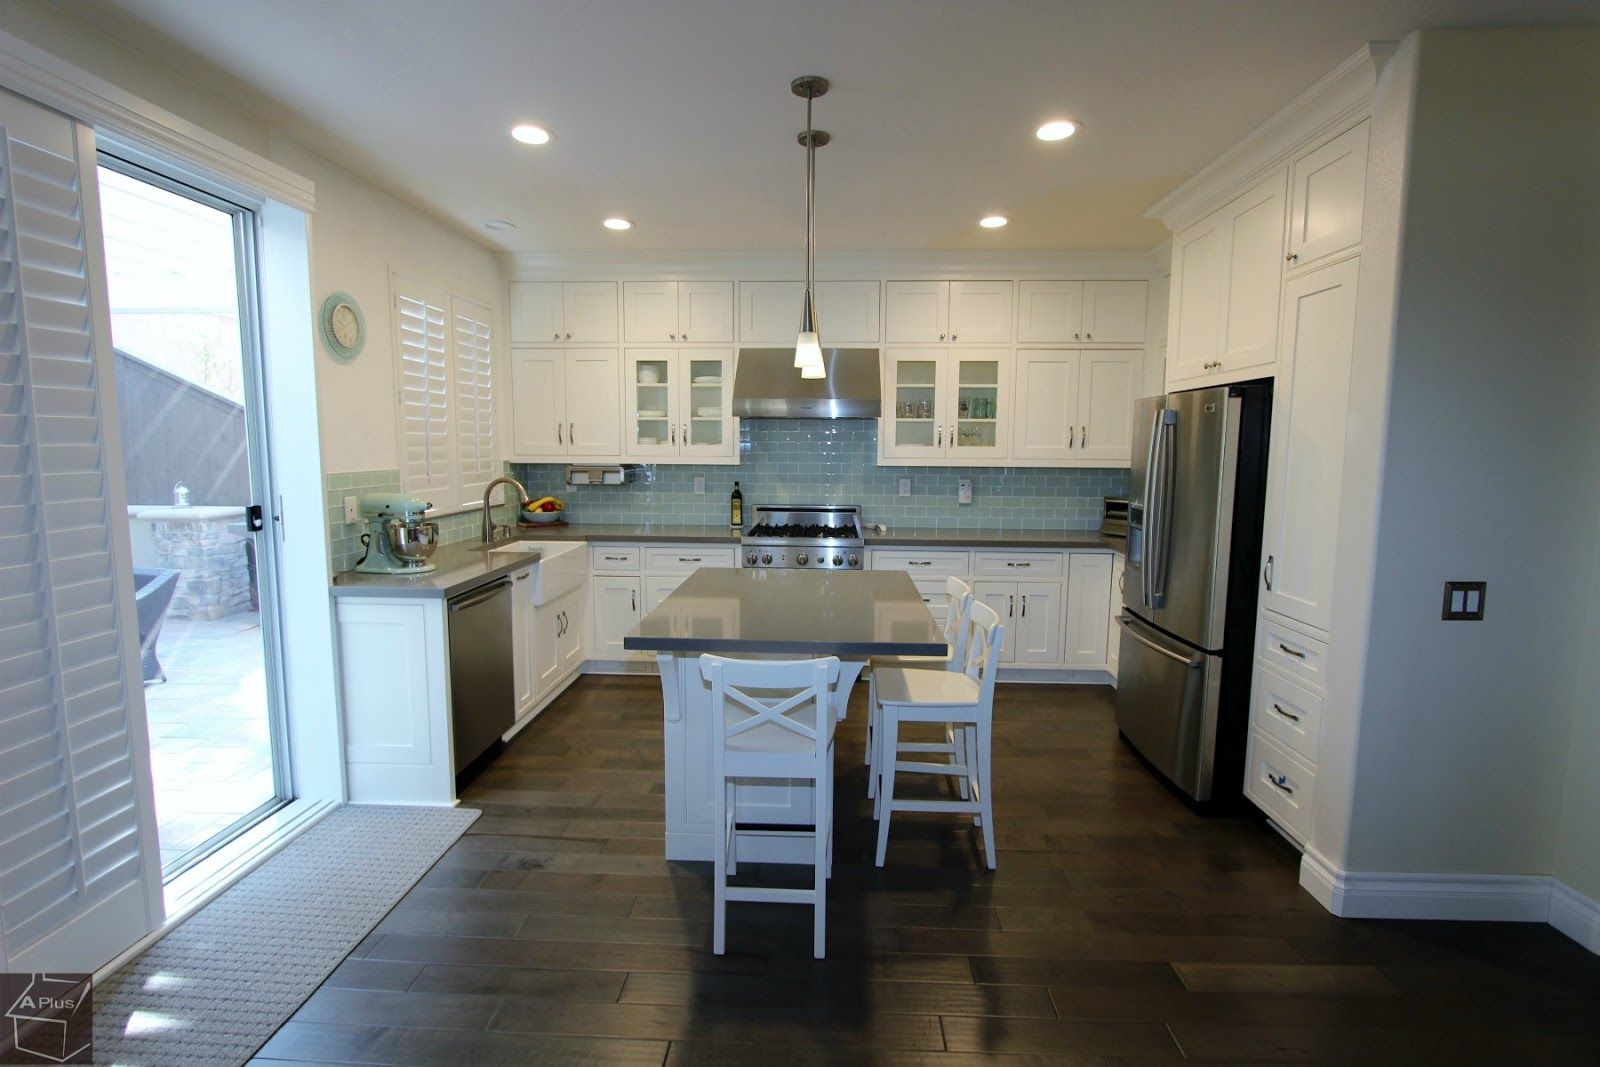 Irvine Complete Kitchen Remodel With Brand New Custom Cabinets Complete Kitchen Remodel Kitchen Remodel Custom Kitchen Cabinets